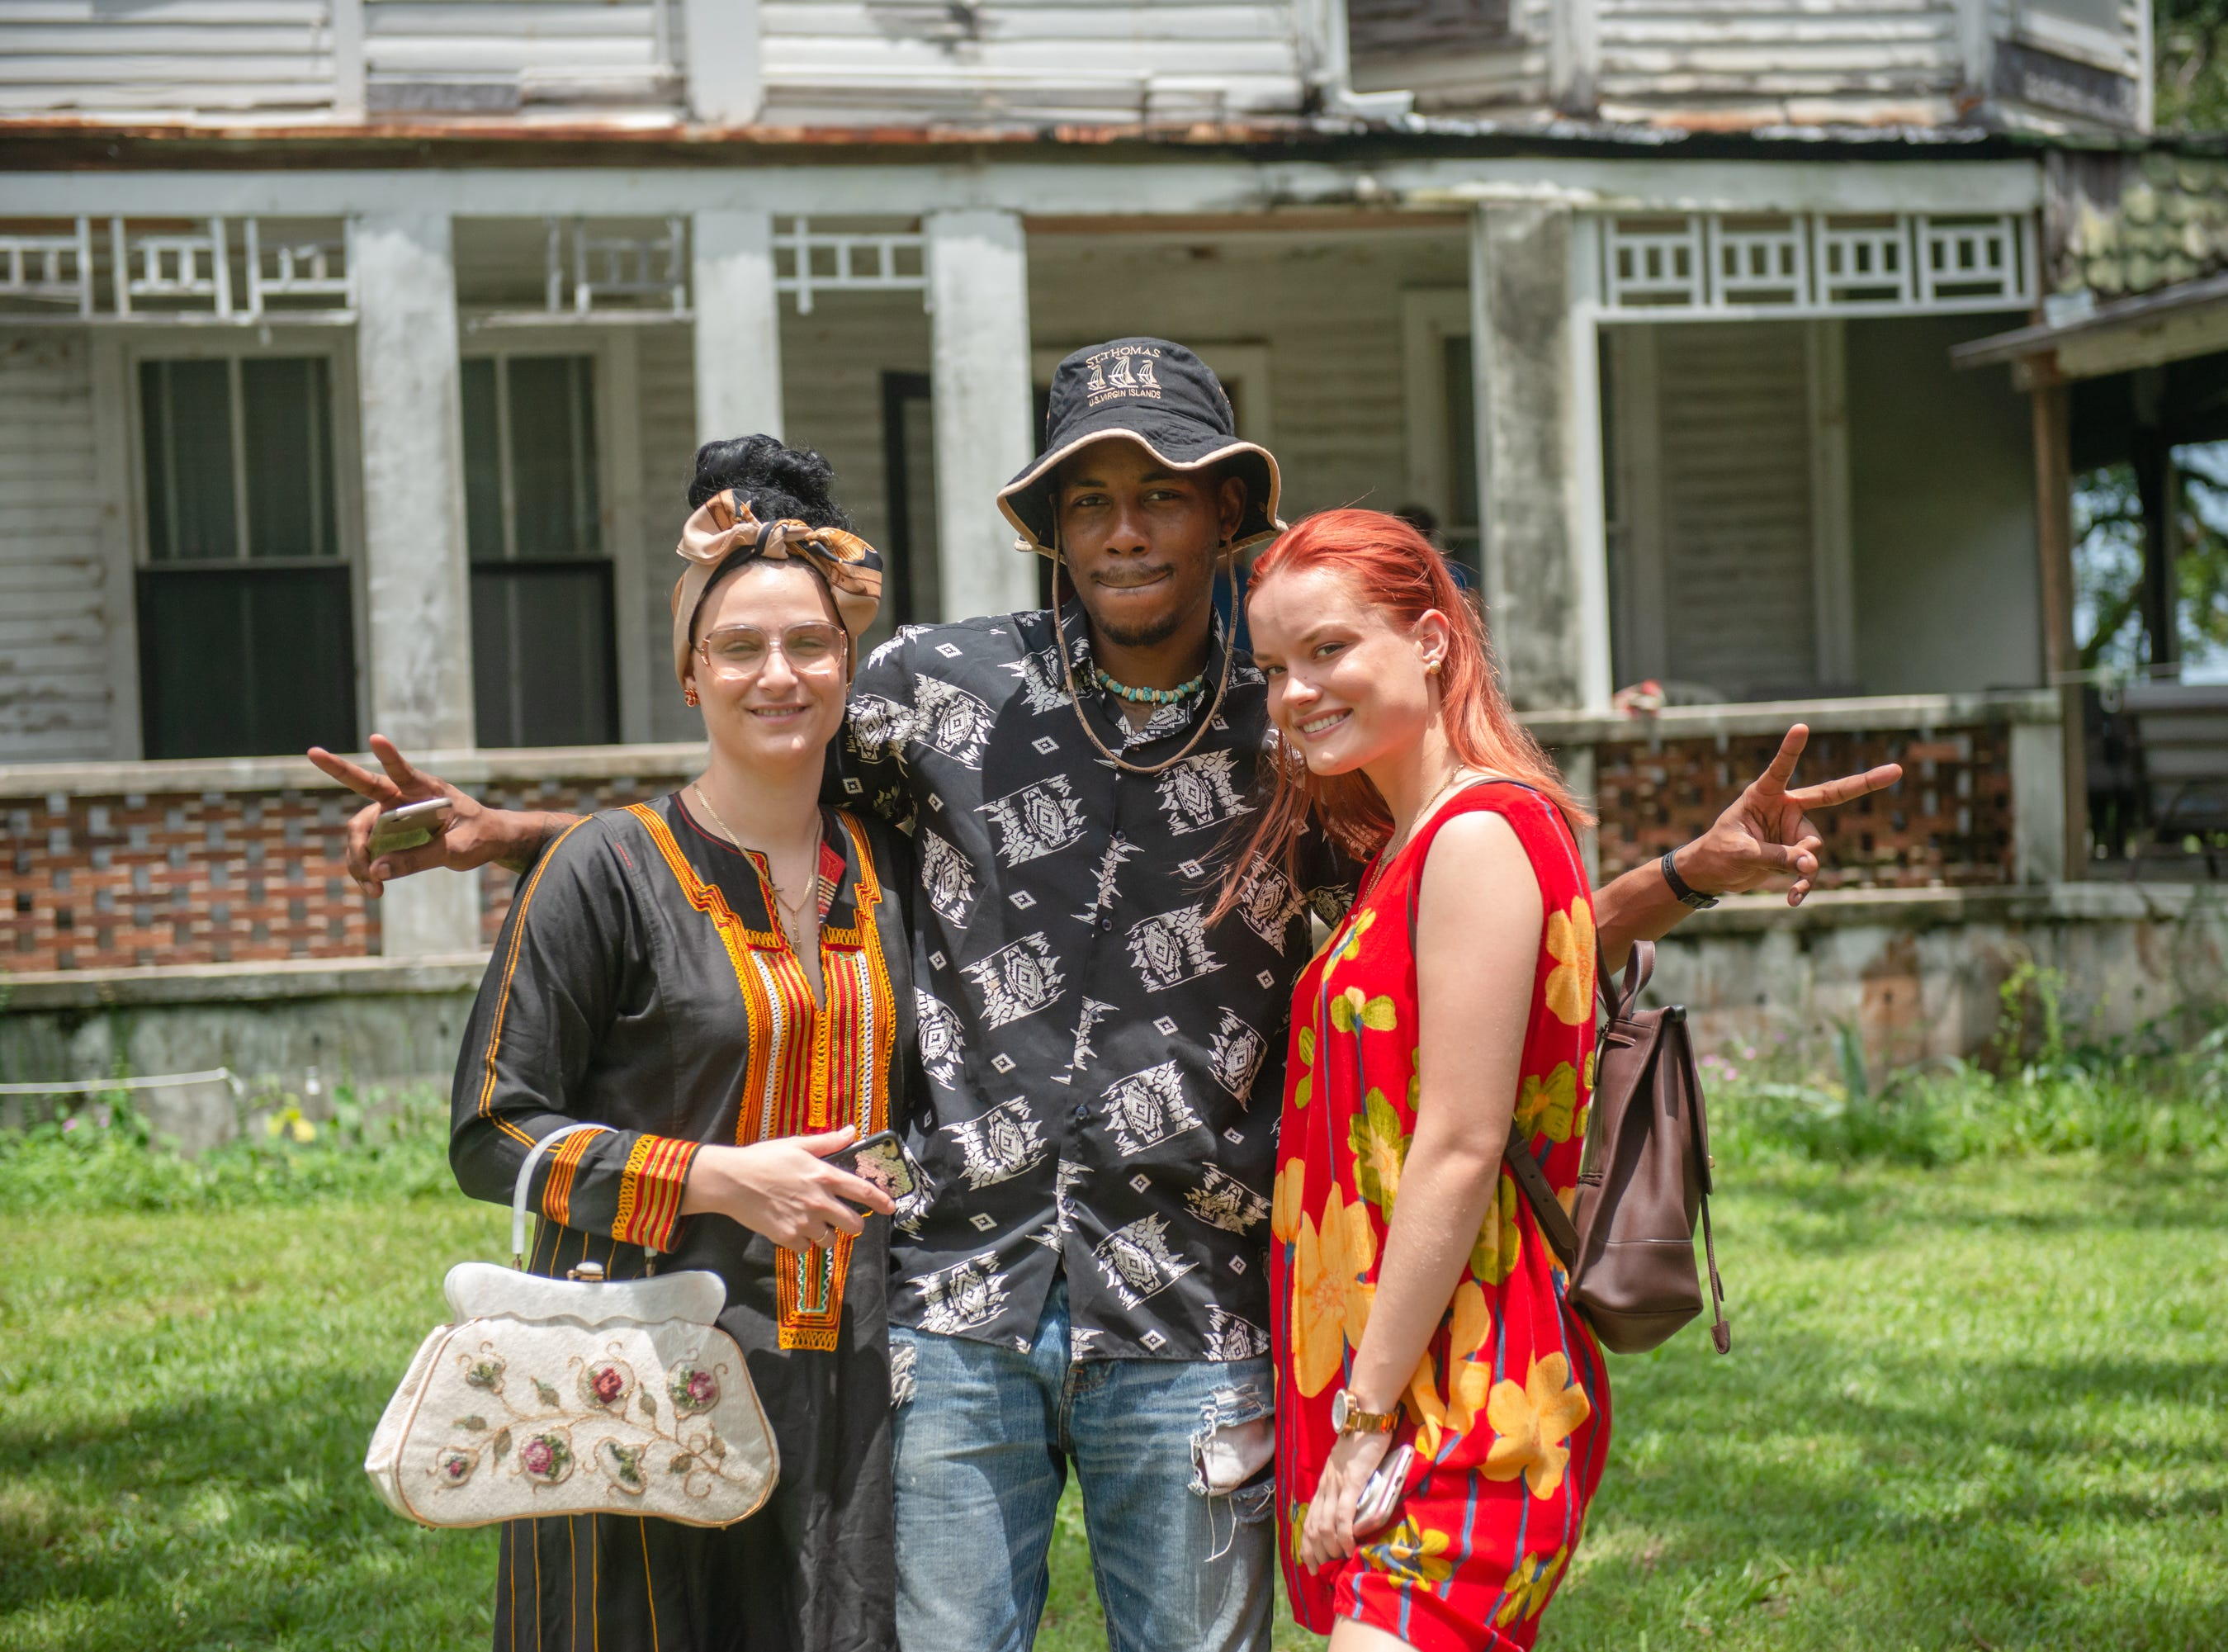 Nicole Herrera, Marcos Davis and Alissa Herrera at the Christmas in July event, which raised money to restore the Green Gables Victorian house in Melbourne.